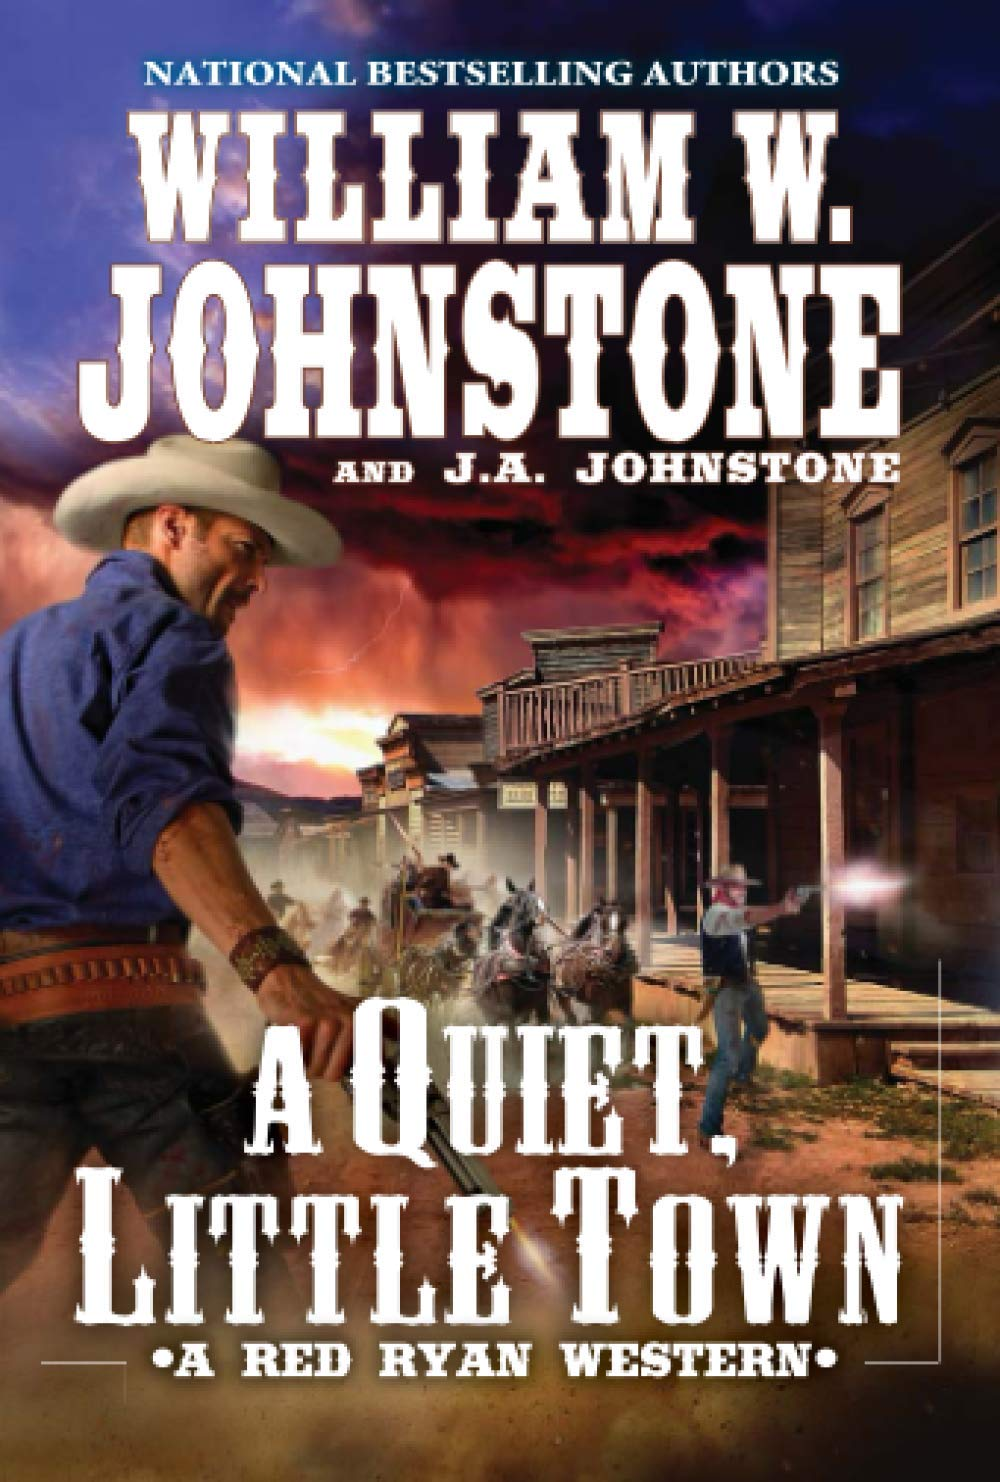 A Quiet, Little Town (A Red Ryan Western)